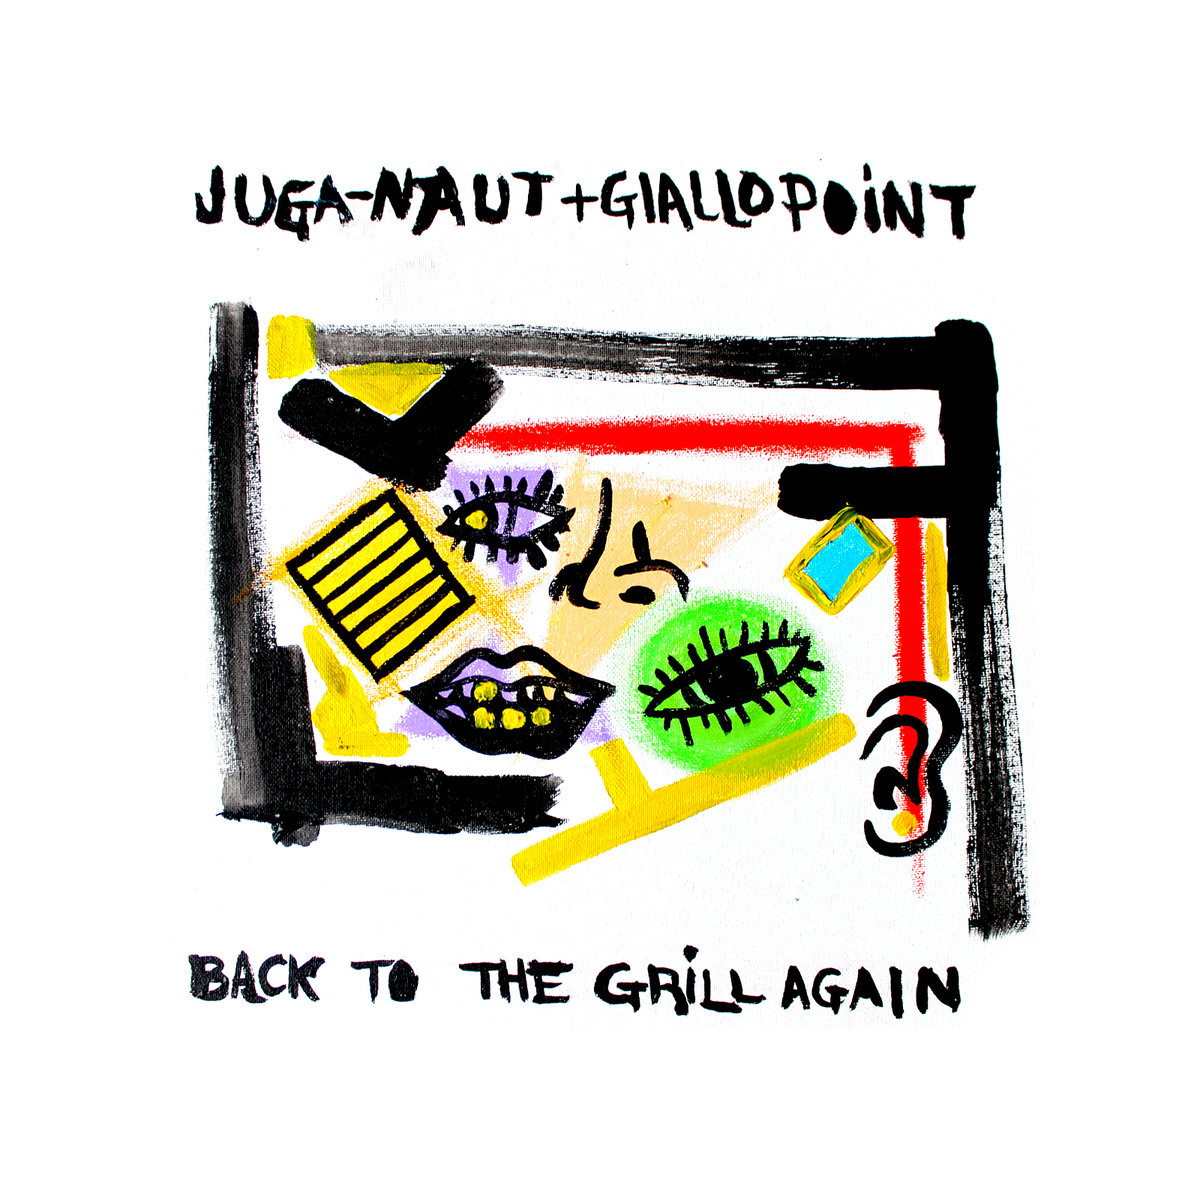 Back_to_the_grill_again_juga-naut___giallo_point